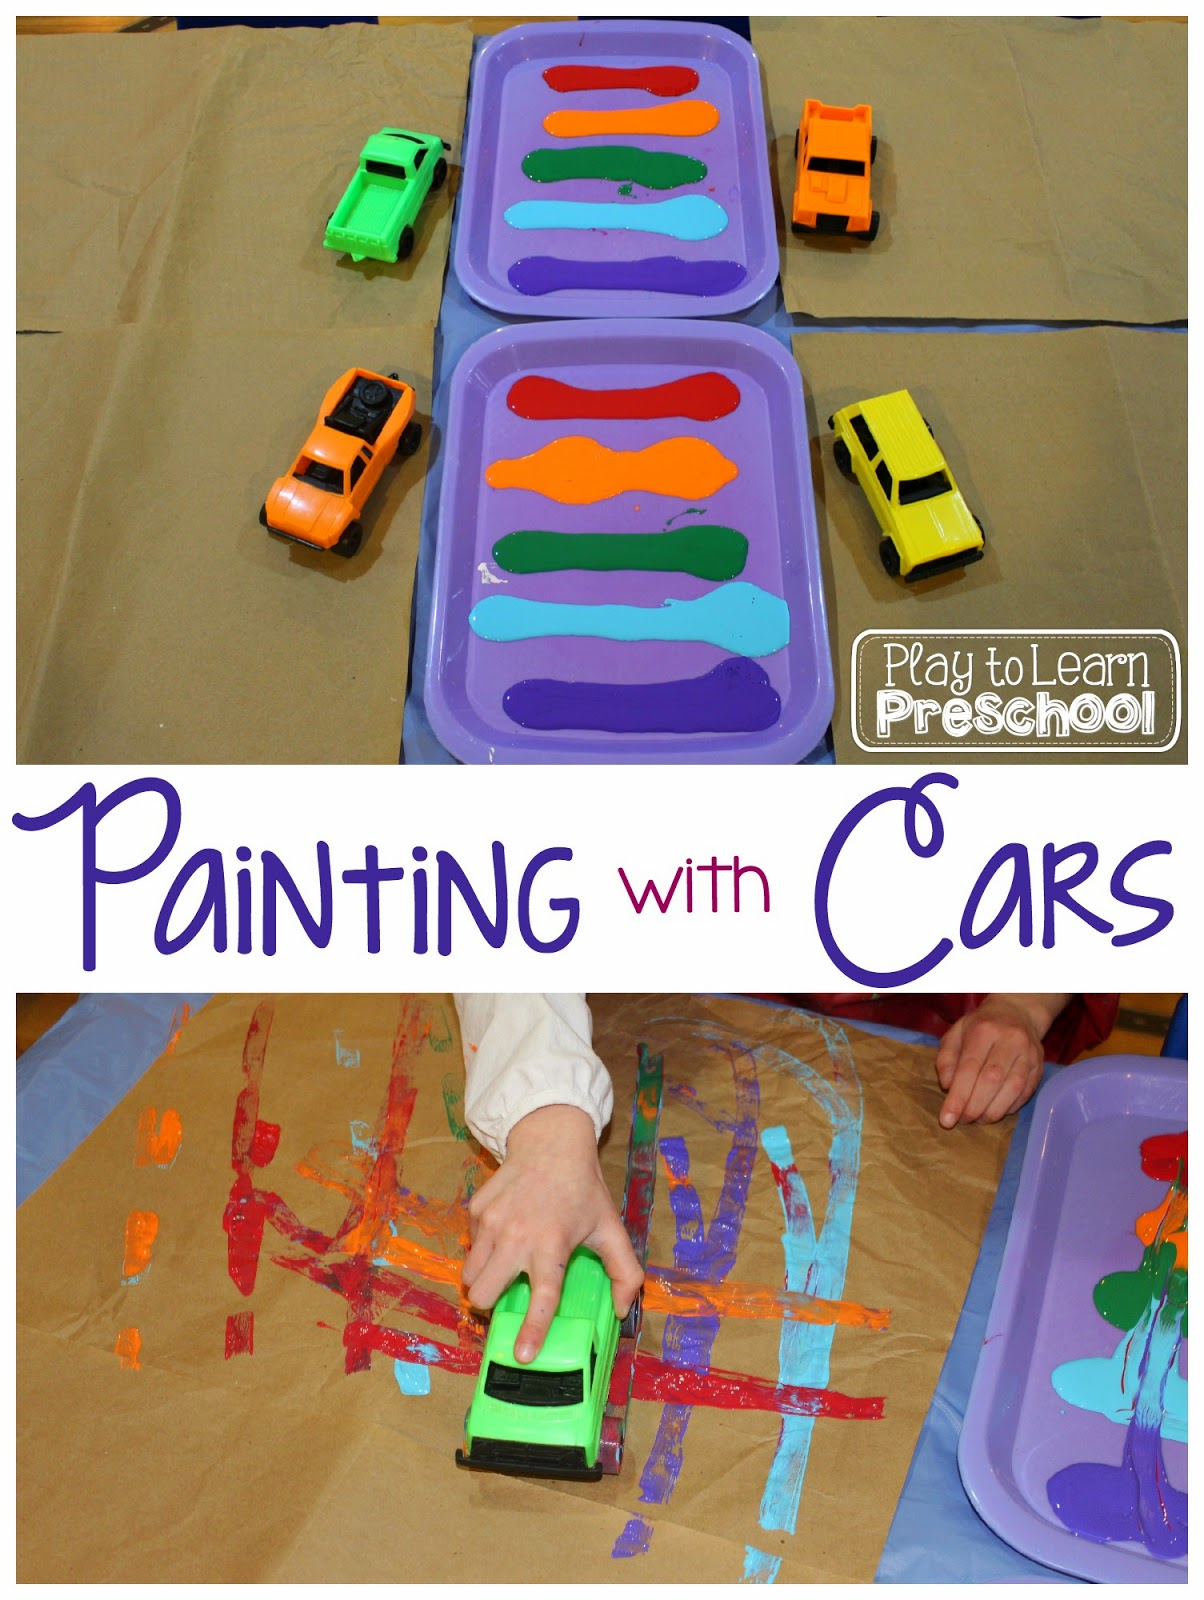 Play To Learn Preschool Painting With Cars